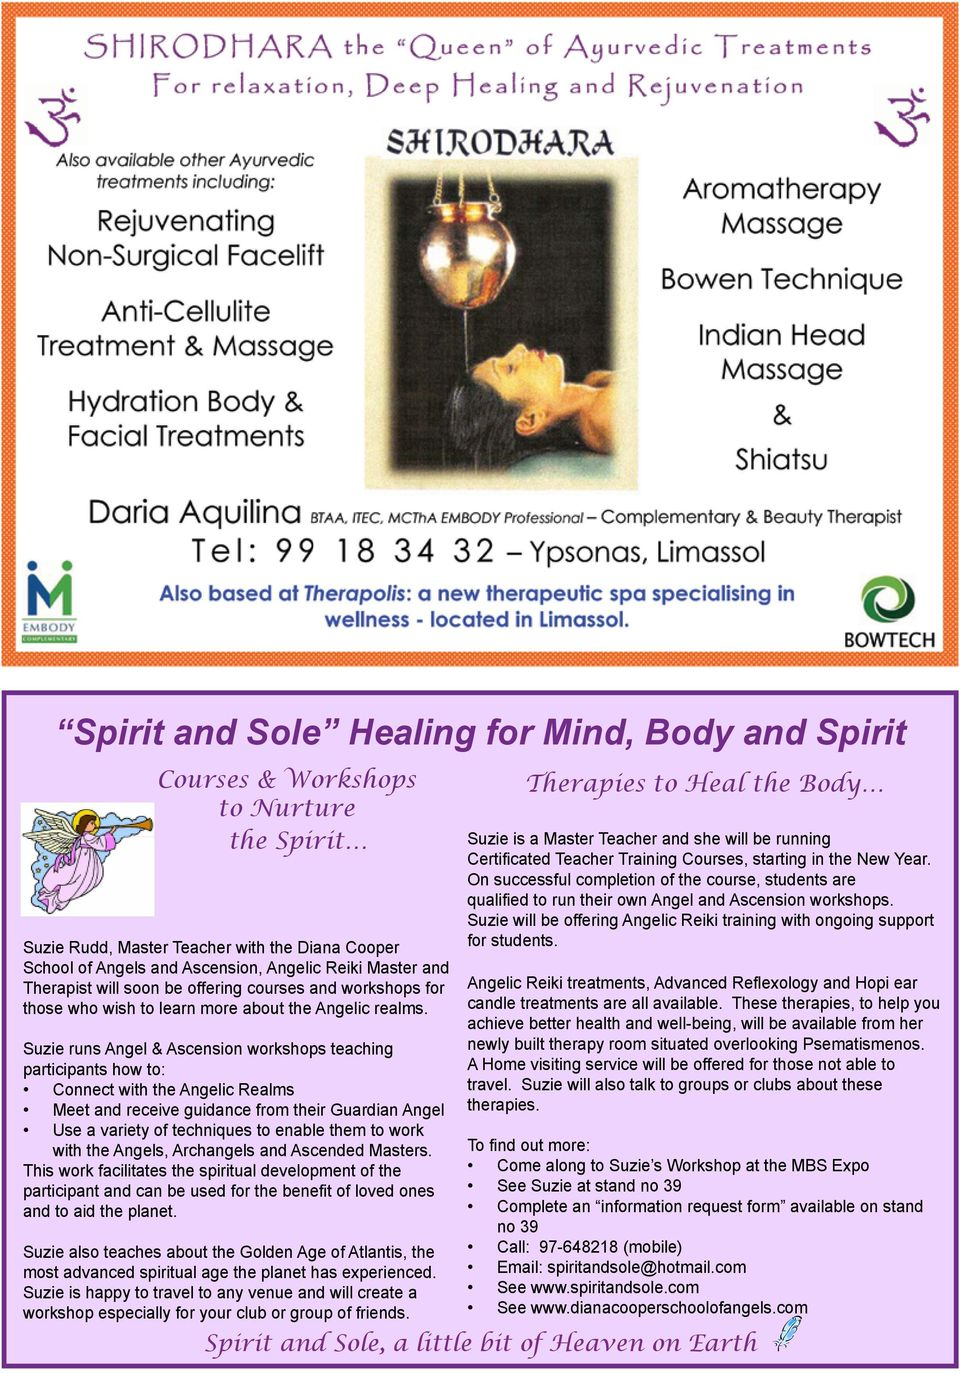 Suzie runs Angel & Ascension workshops teaching participants how to: Connect with the Angelic Realms Meet and receive guidance from their Guardian Angel Use a variety of techniques to enable them to